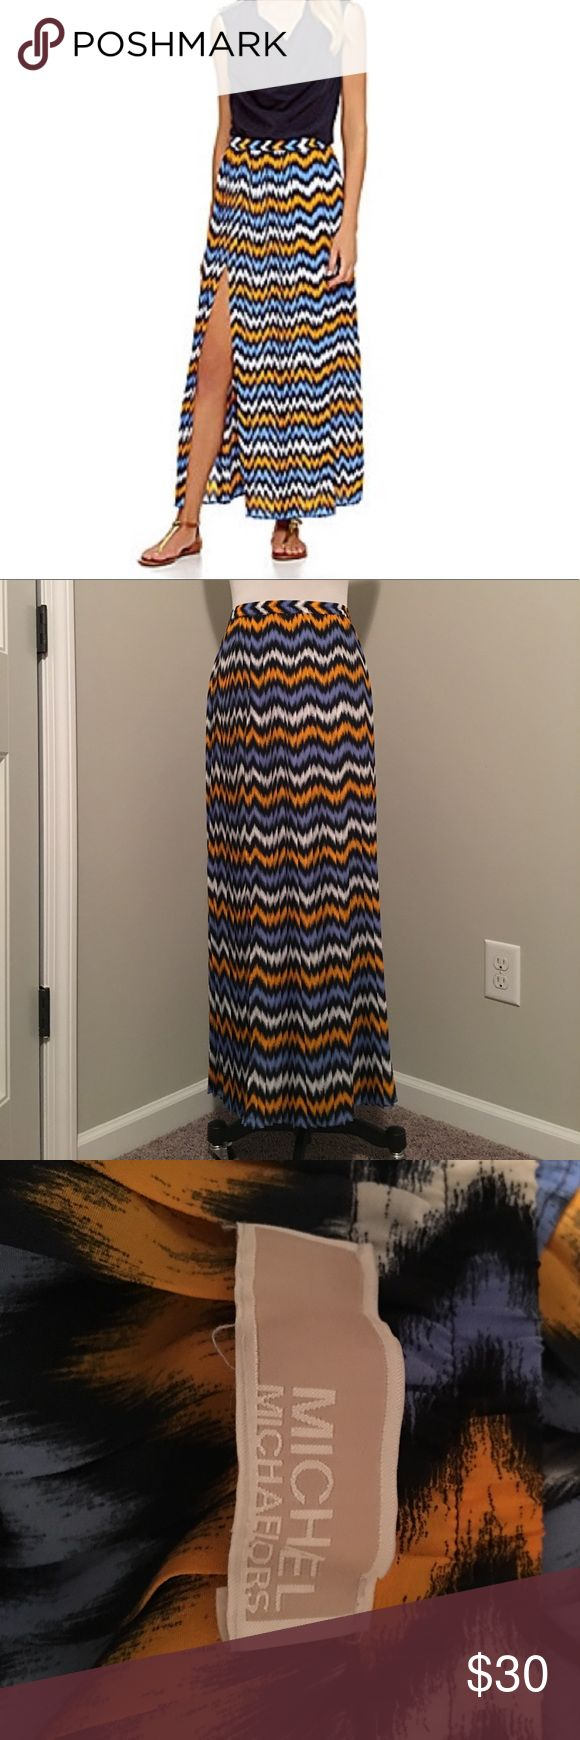 MK chevron maxi skirt with slit size XS Michael Kors chevron maxi skirt with slit up side. Size XS. Polyester. Super comfy and in wonderful condition!! Golden yellow, white, navy, light blue colors. Elastic waist. Michael Kors Skirts Maxi